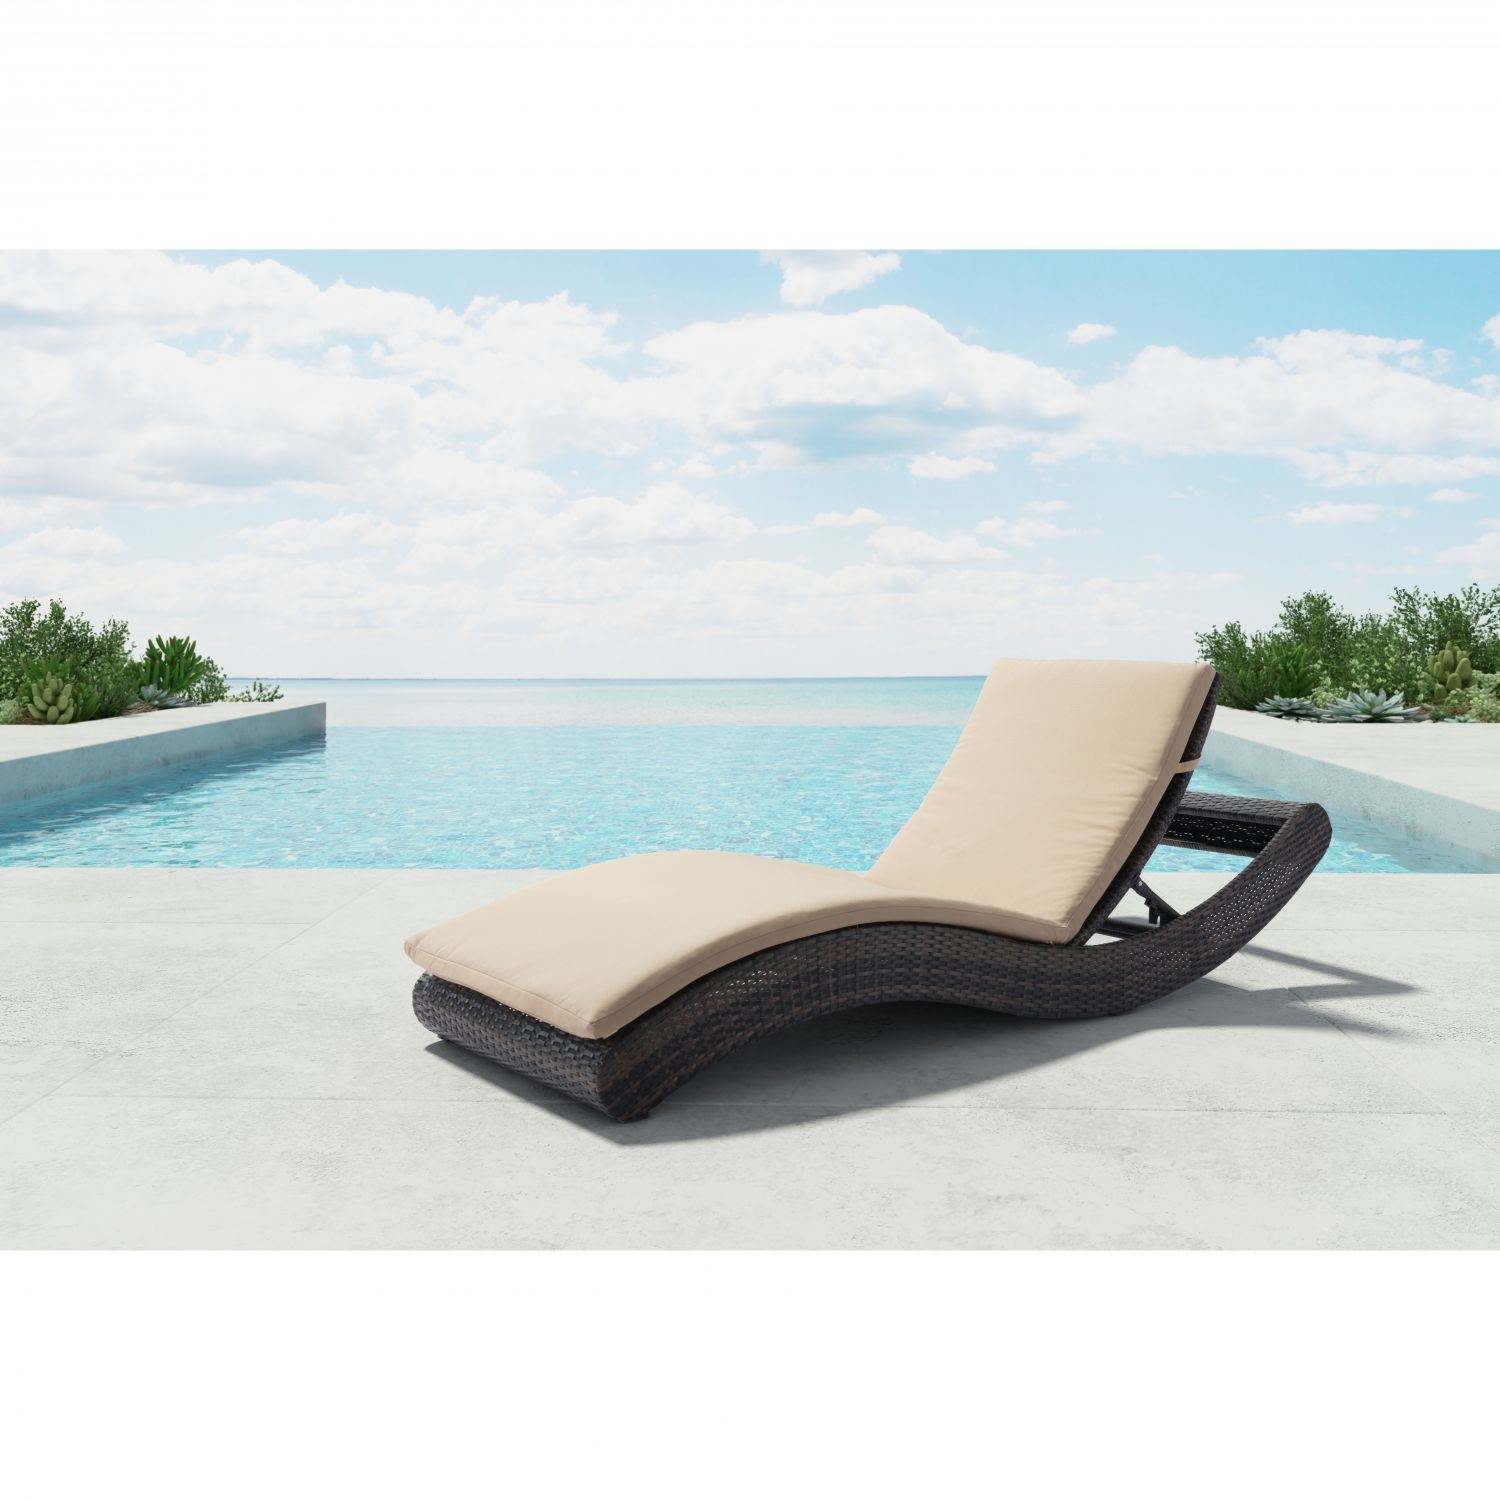 Pamelon beach chaise lounge brn beige 703840 zuo modern for Beach lounge chaise